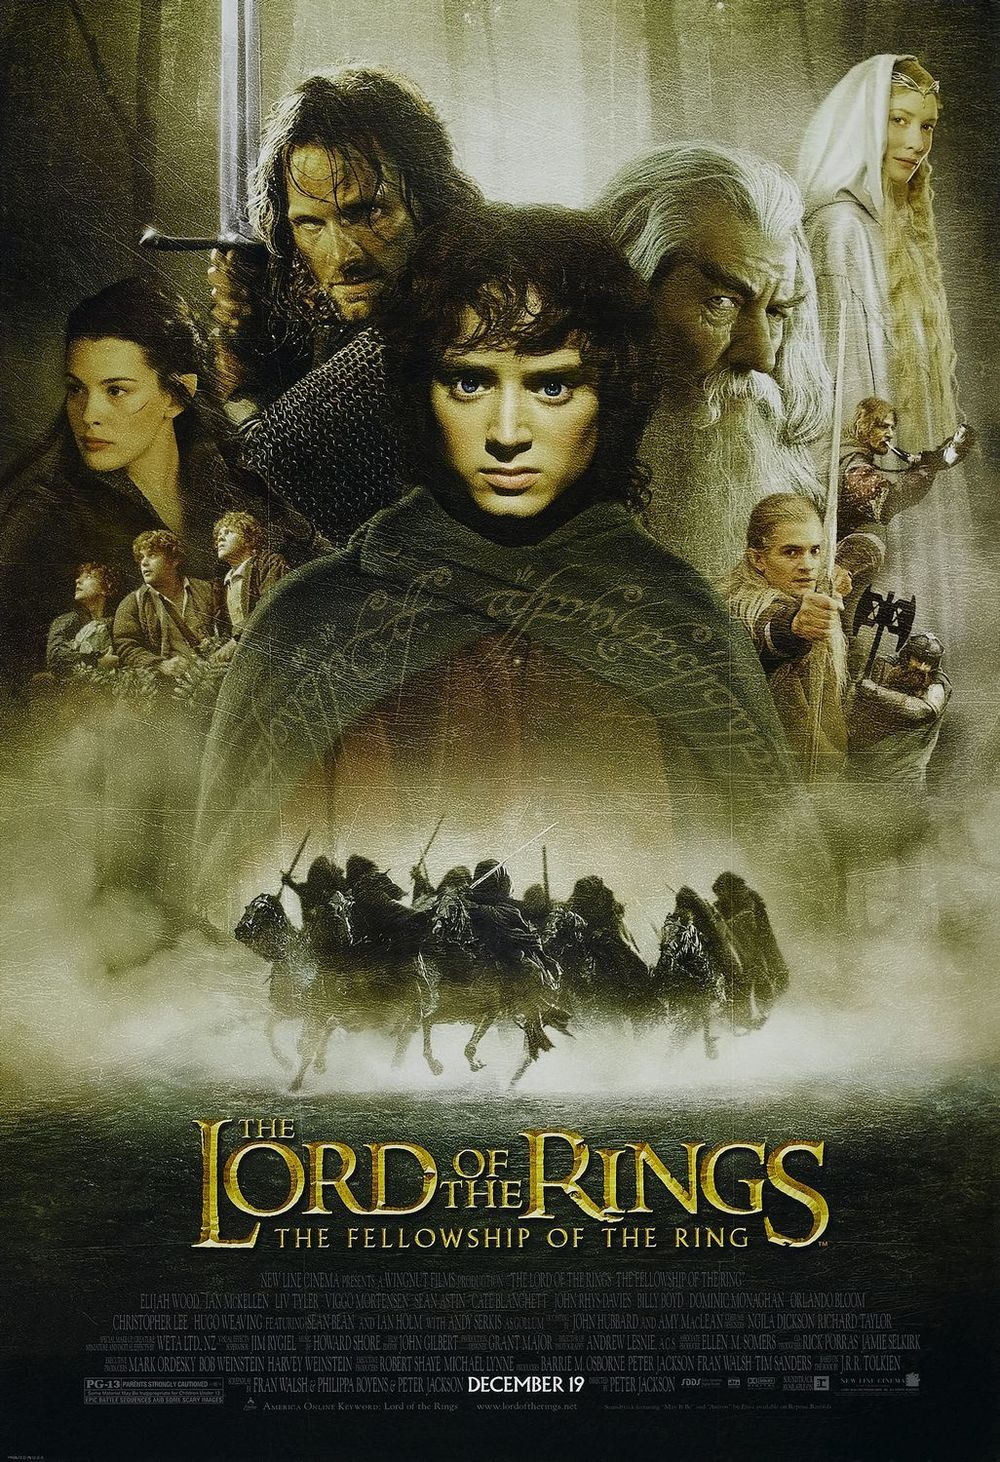 The J.R.R Tolkien Movies